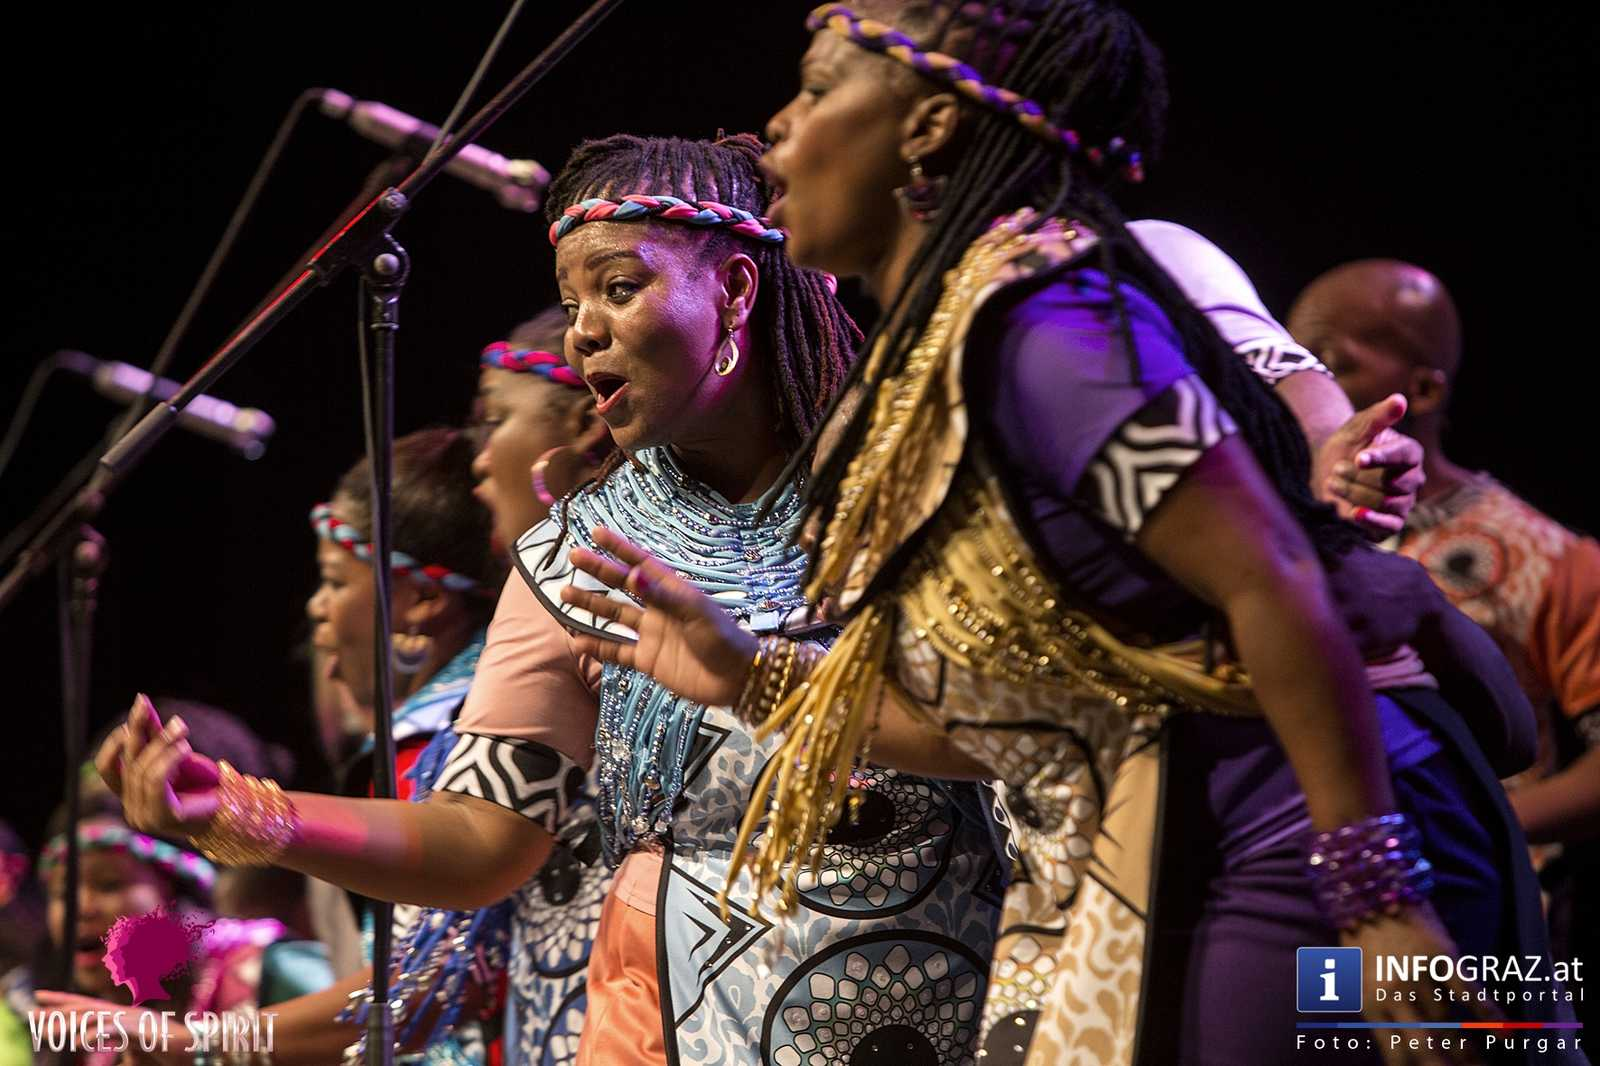 soweto gospel choir internationales chorfestival statdthalle graz voices of spirit eroeffnung festivals 2016 124